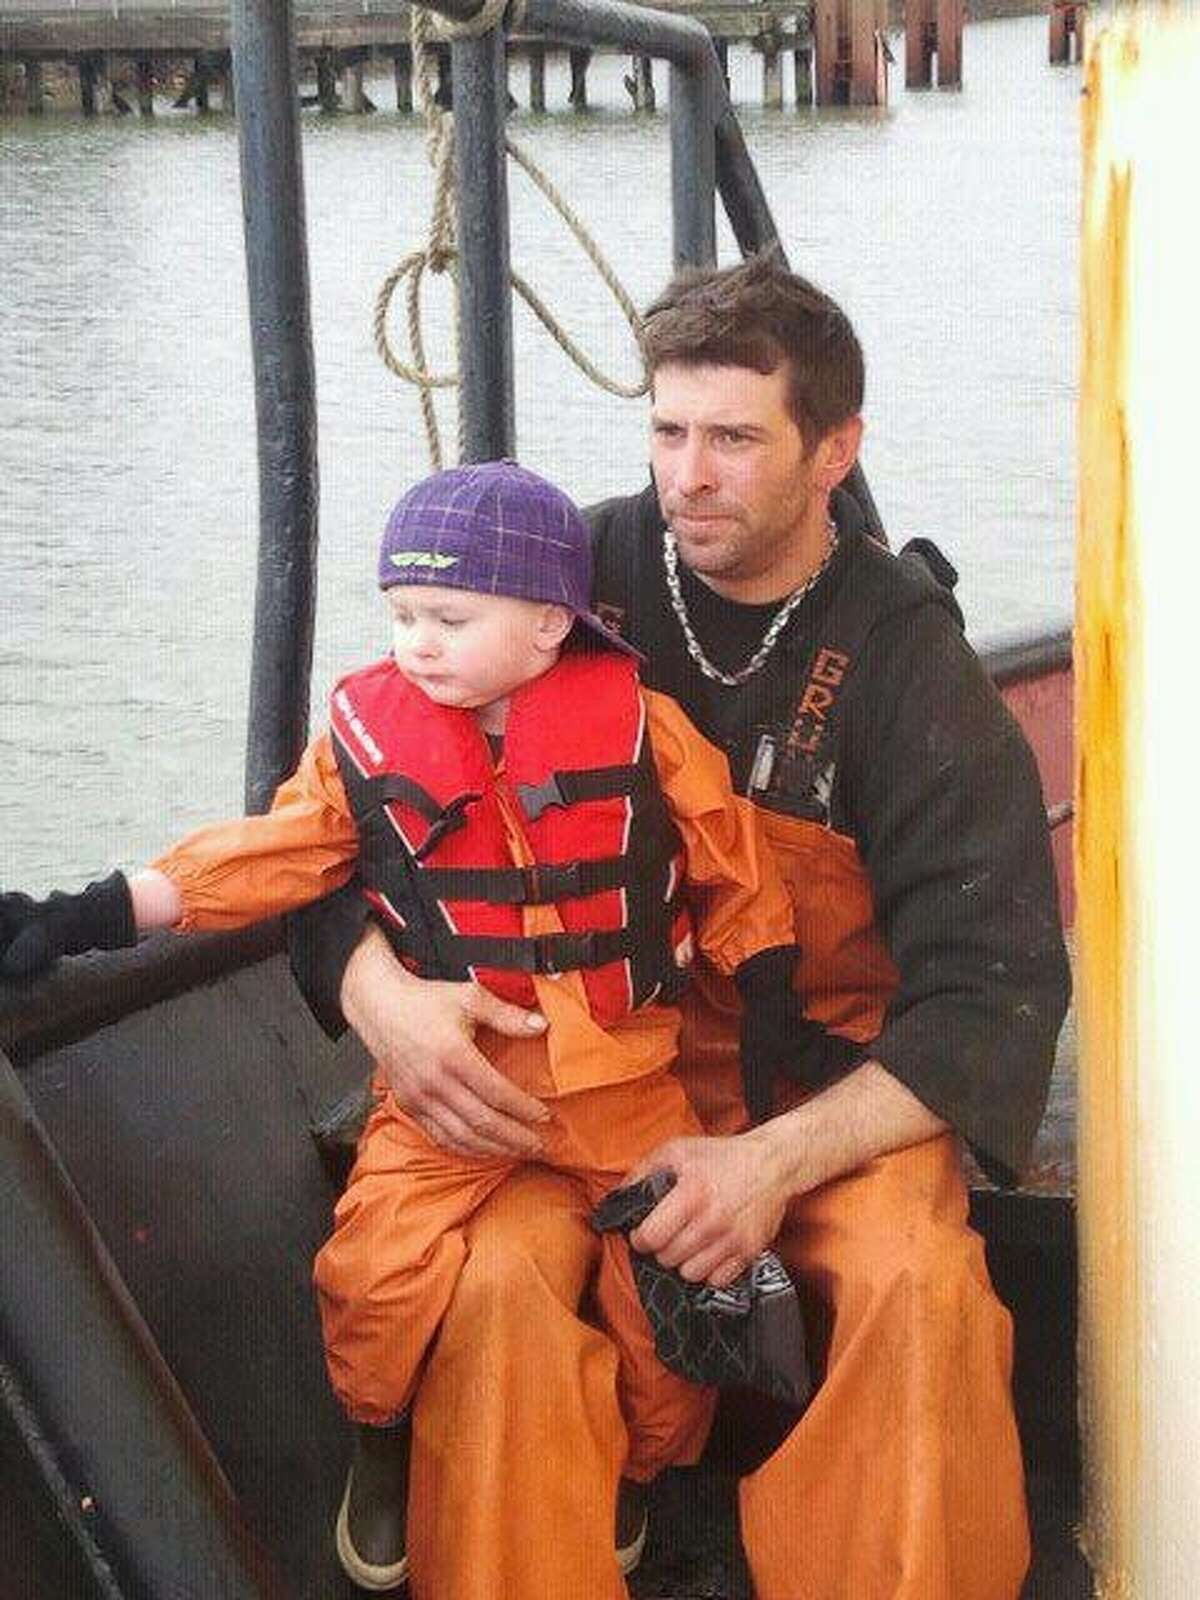 Jason Bjaranson, shown with his son, Talon, had texted his girlfriend before he went missing.